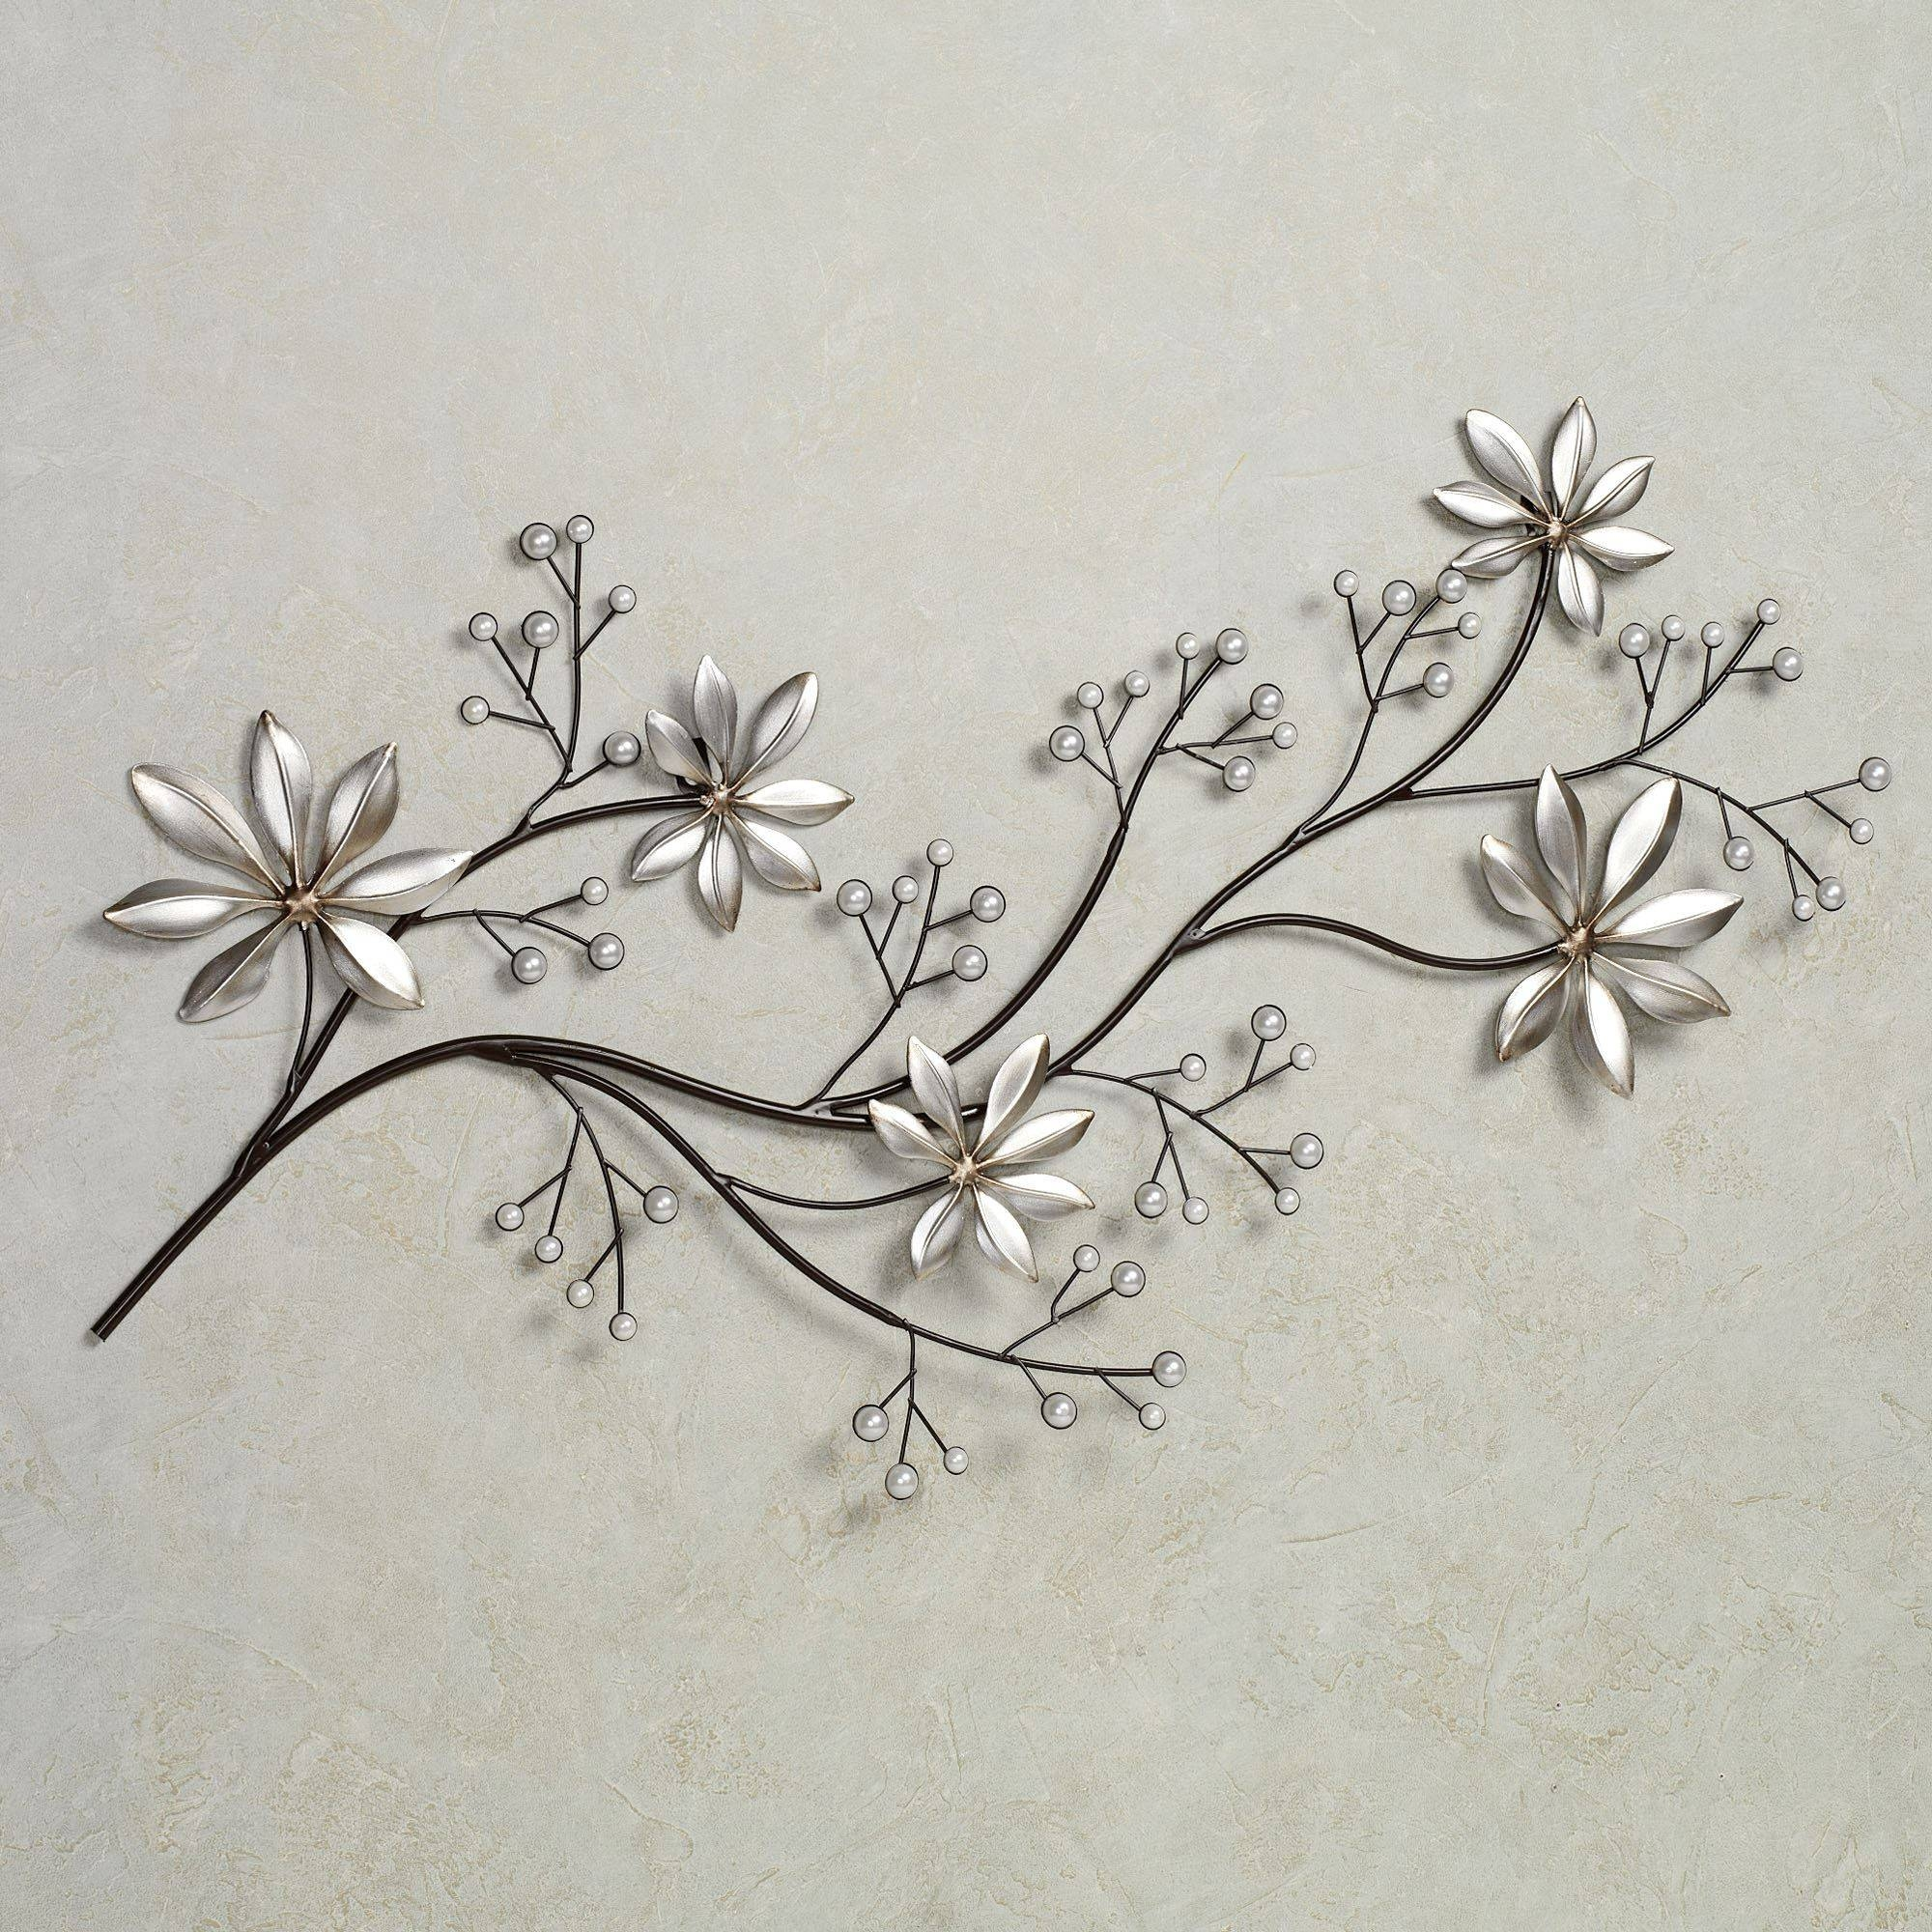 Metal Wall Decor Hobby Lobby Flower : Unique Material Decorative Throughout Current Hobby Lobby Metal Wall Art (View 8 of 20)